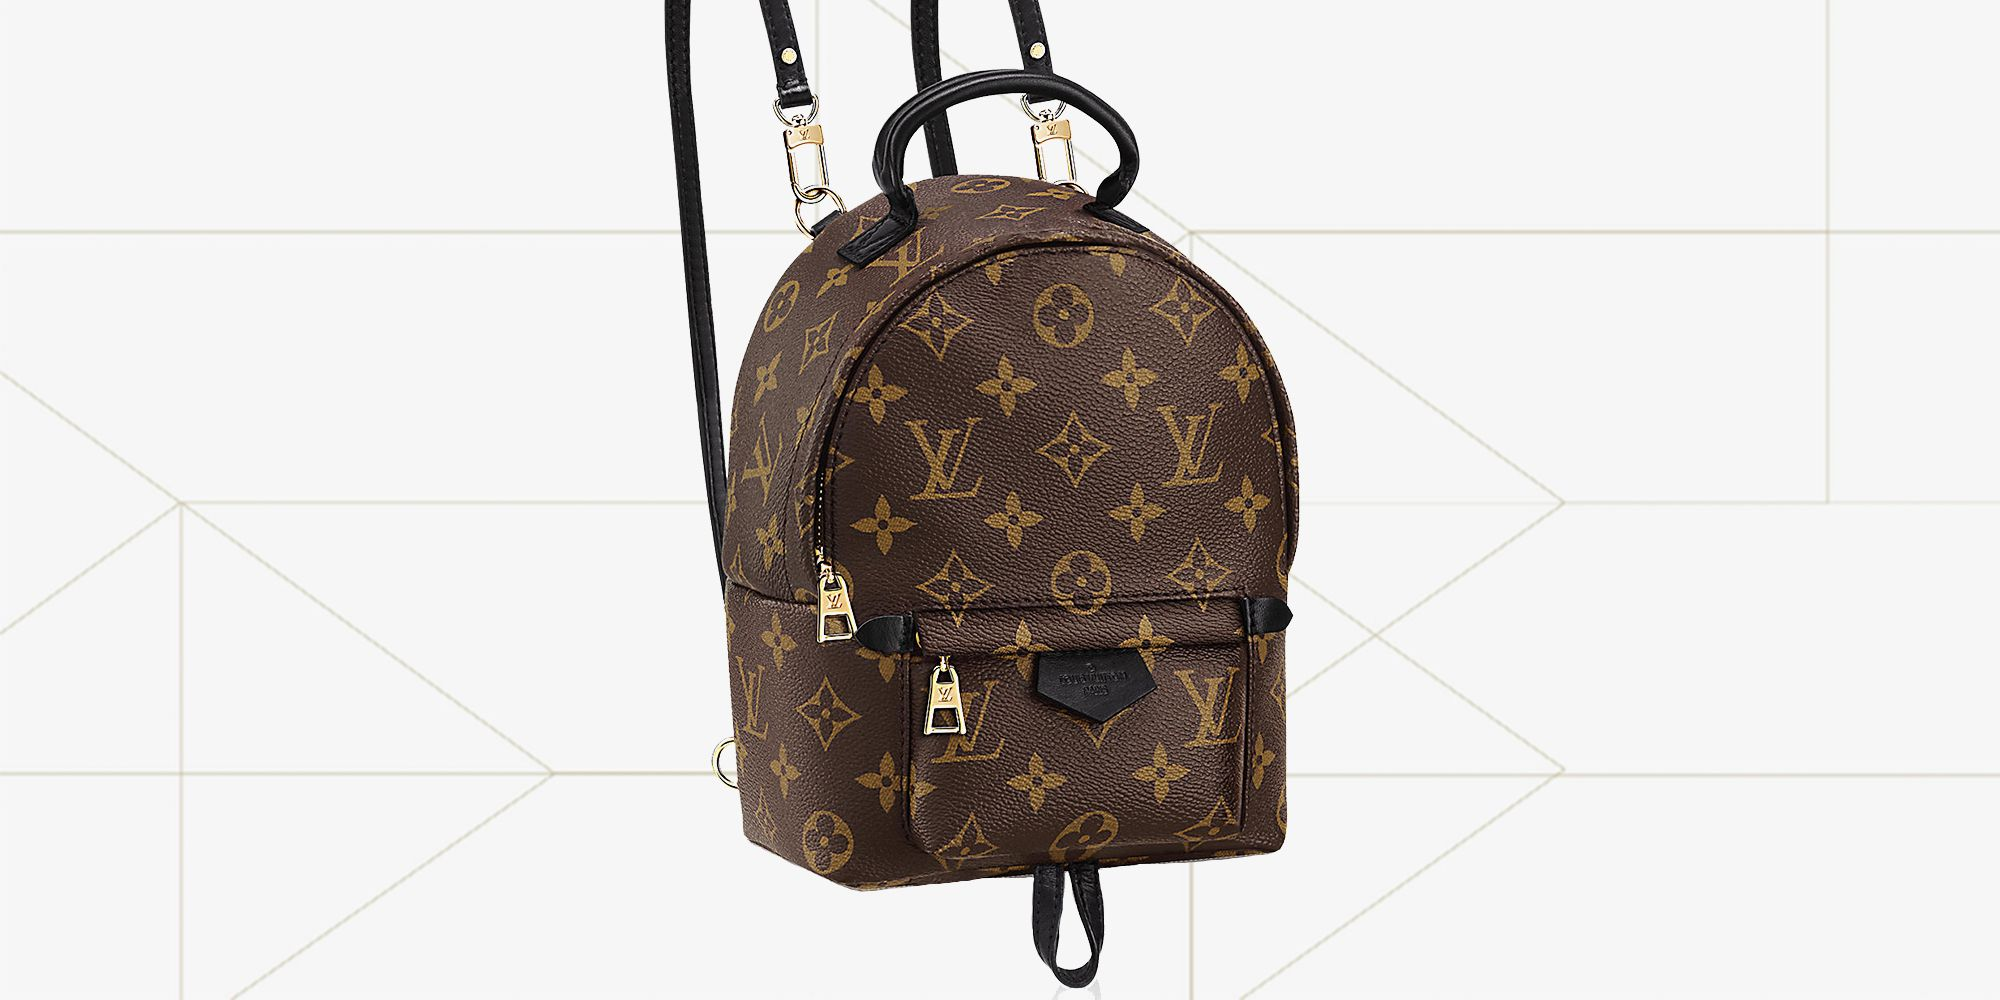 Designer Handbags - Best Bags, Totes, Wallets, and More